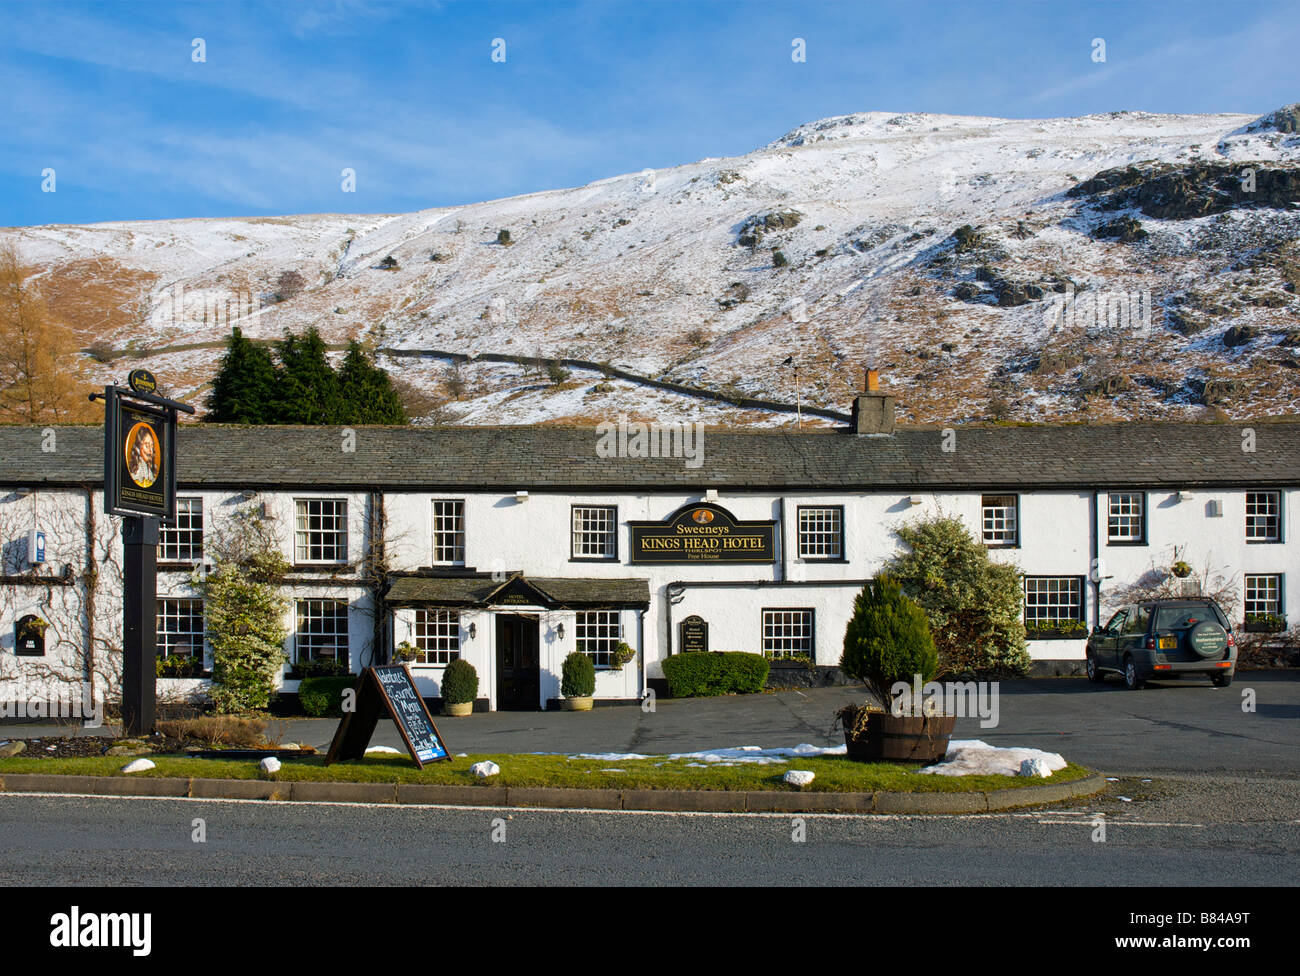 Kings Head hotel, Thirlspot, near Keswick, Lake District National Park, Cumbria, England UK - Stock Image